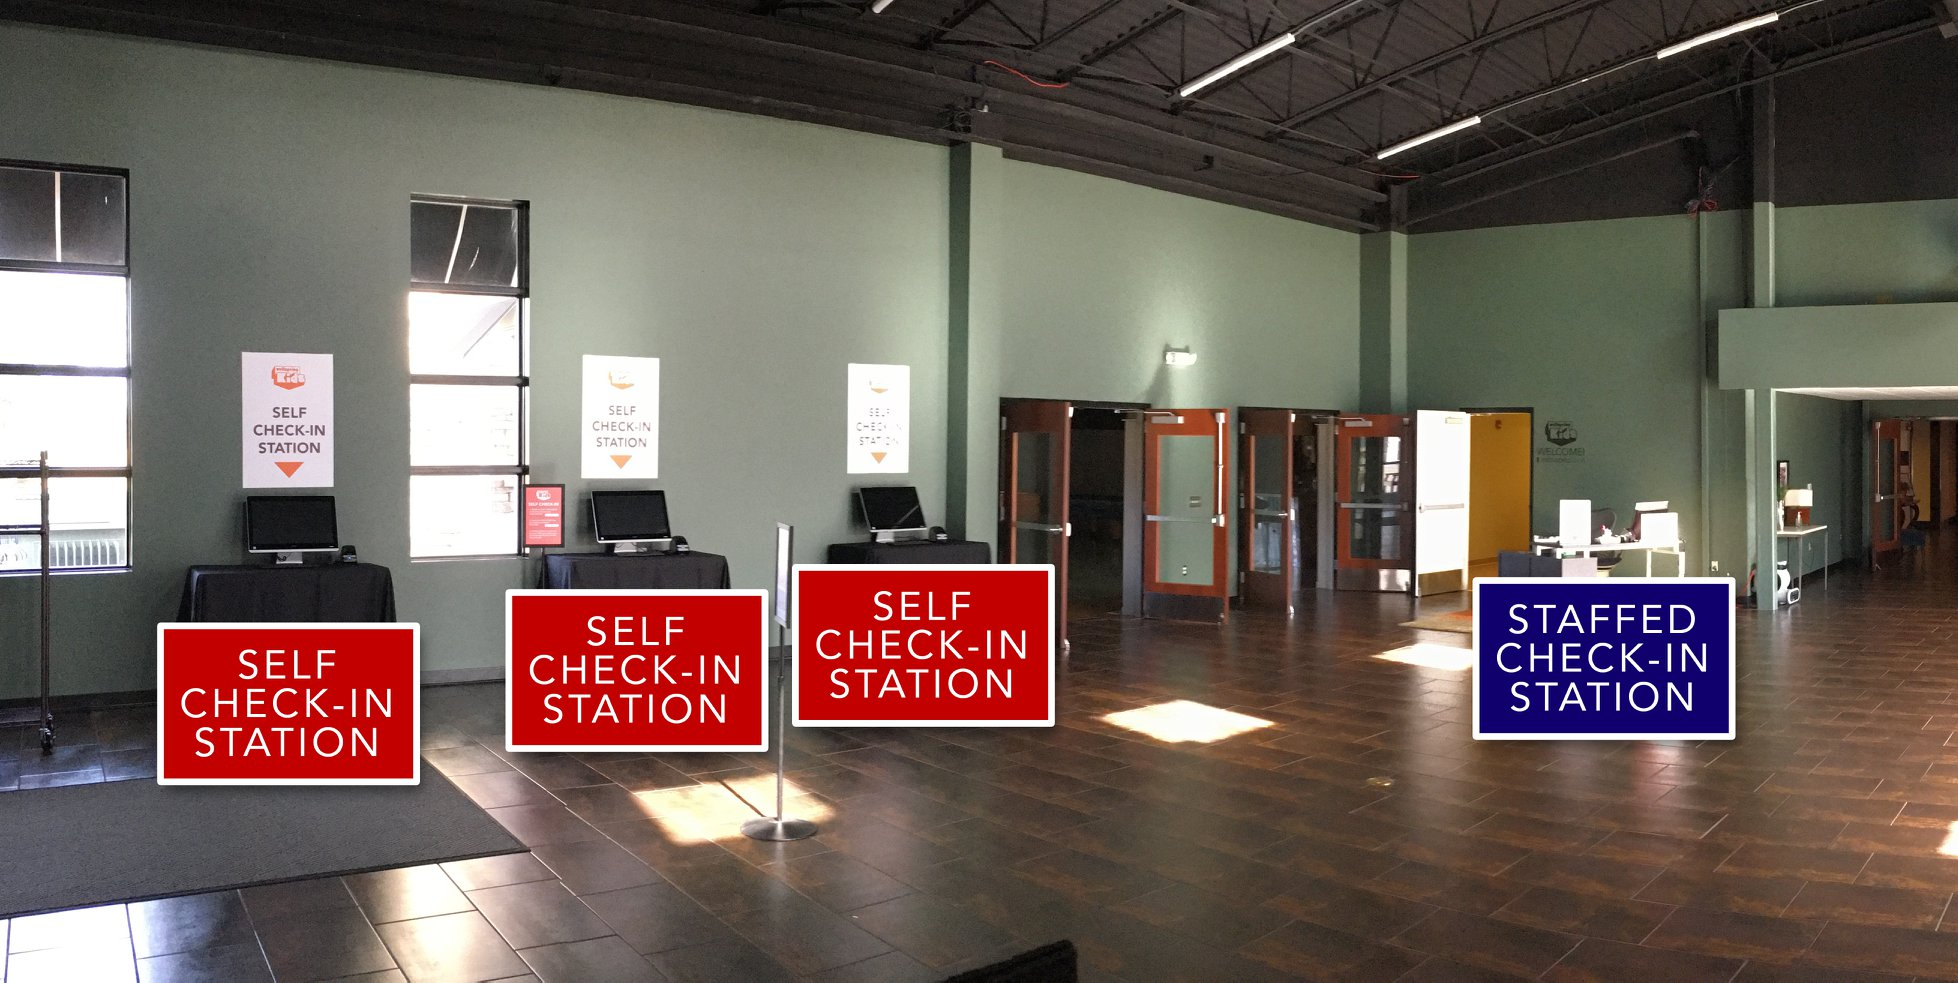 This location in the South Hall contains a staffed check-in station to help your kids get where they need to go.